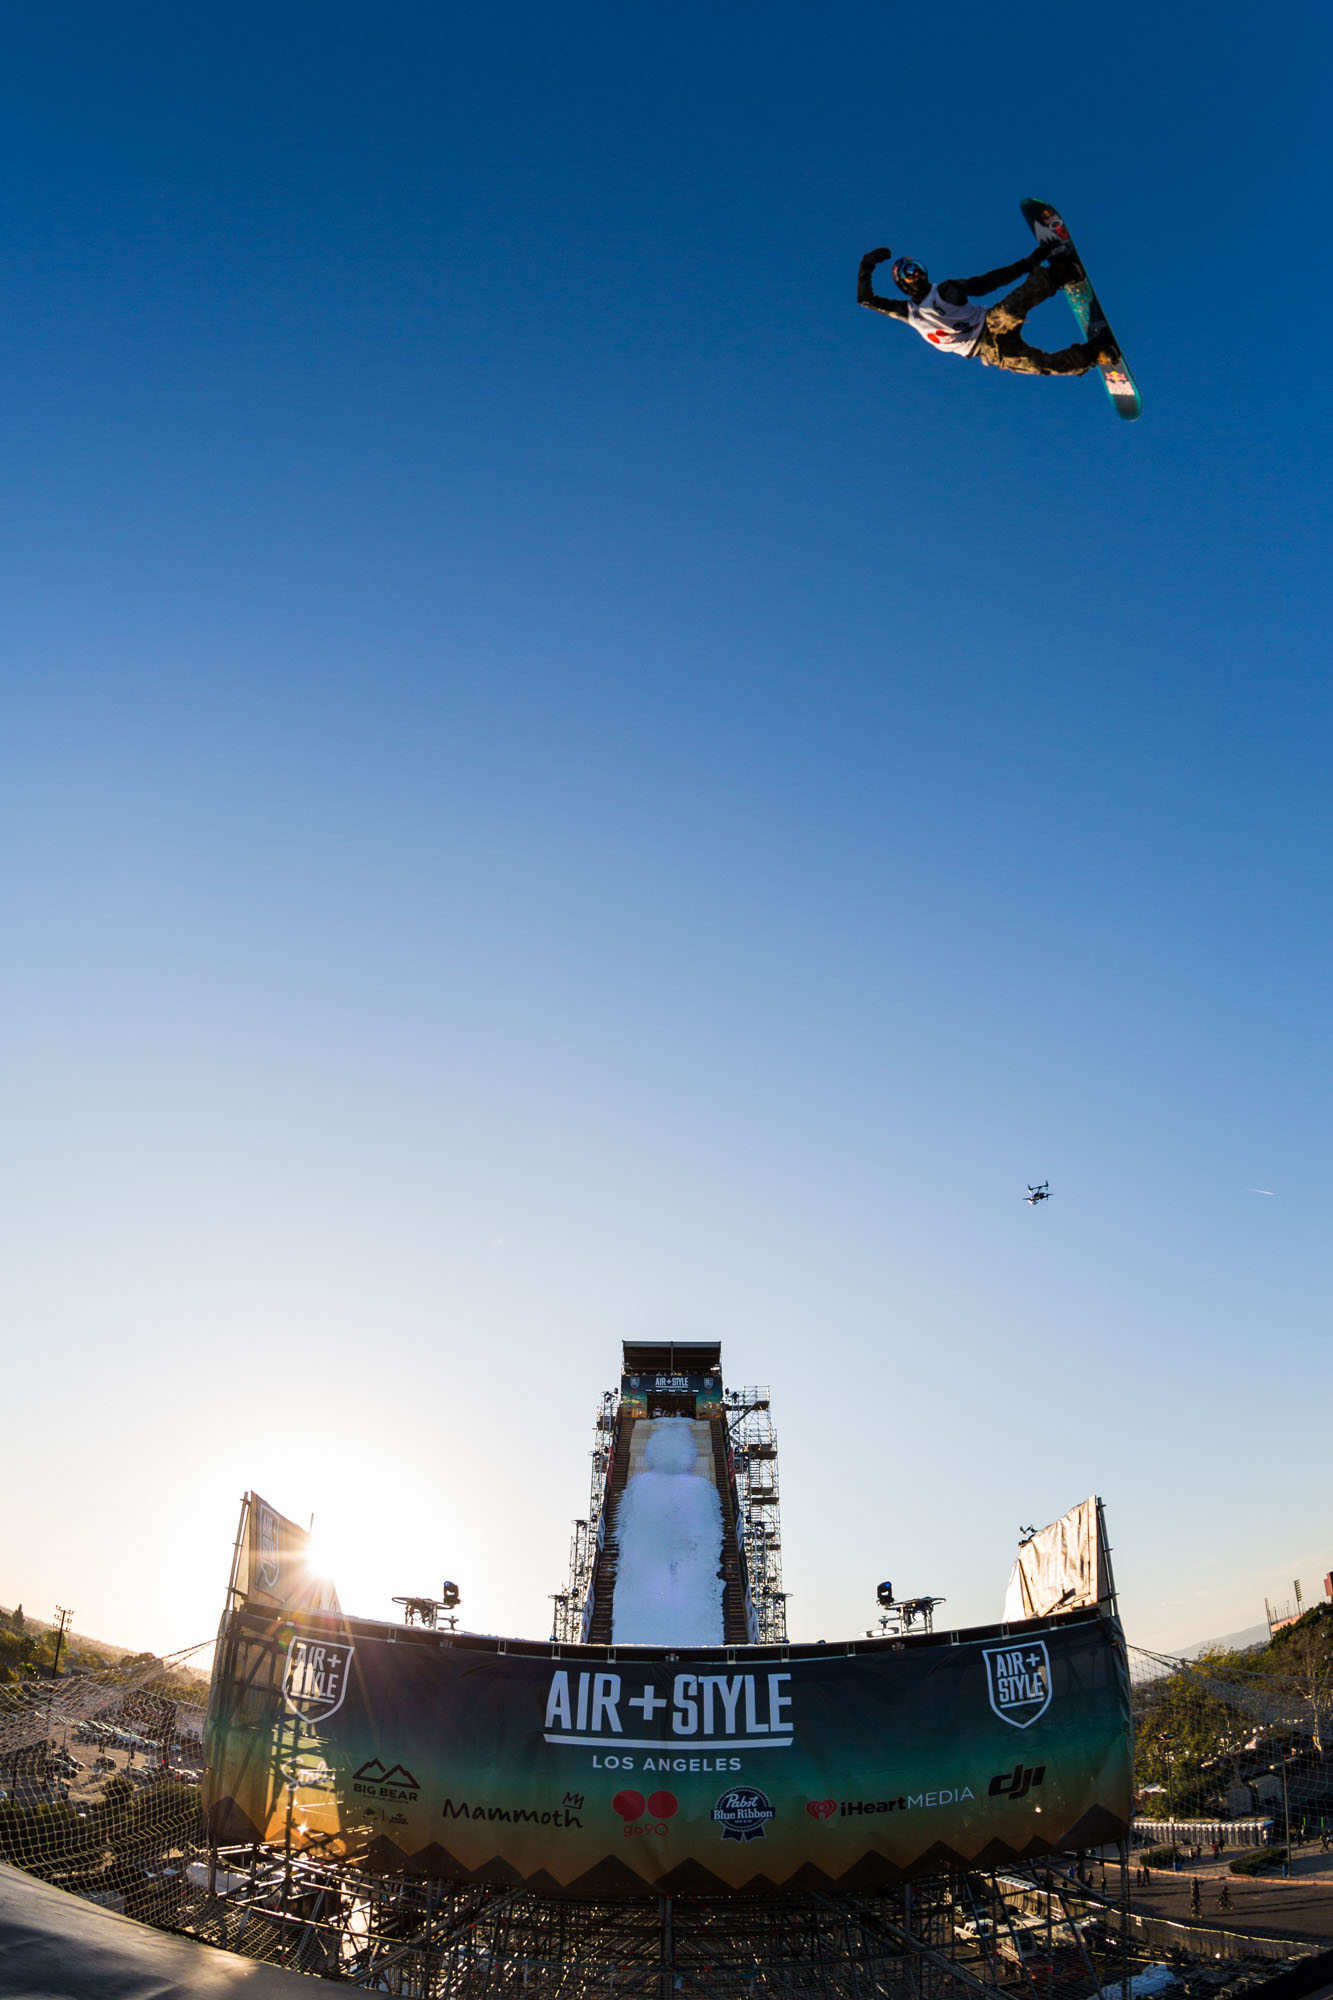 Mark McMorris competes at Air + Style, held at EXPO Park at the Coliseum in Los Angeles, CA, USA on 20 February, 2016.